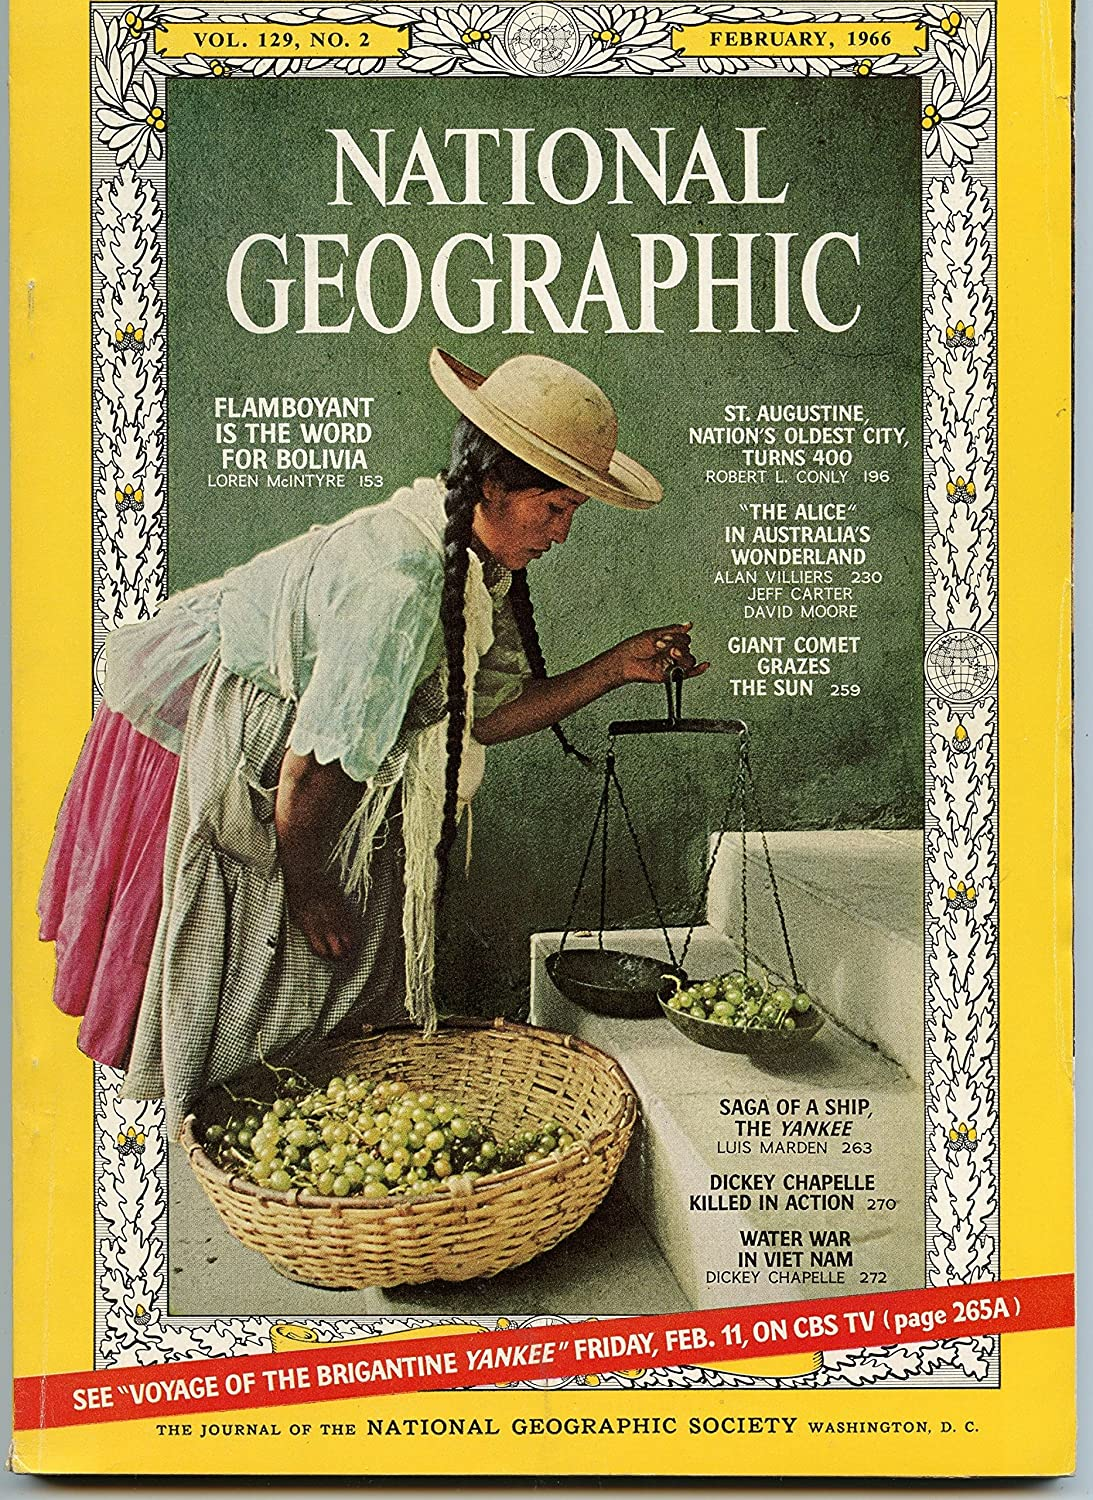 National Geographic - February 1966 - Vol. 129, No. 2 017154 News General Interest